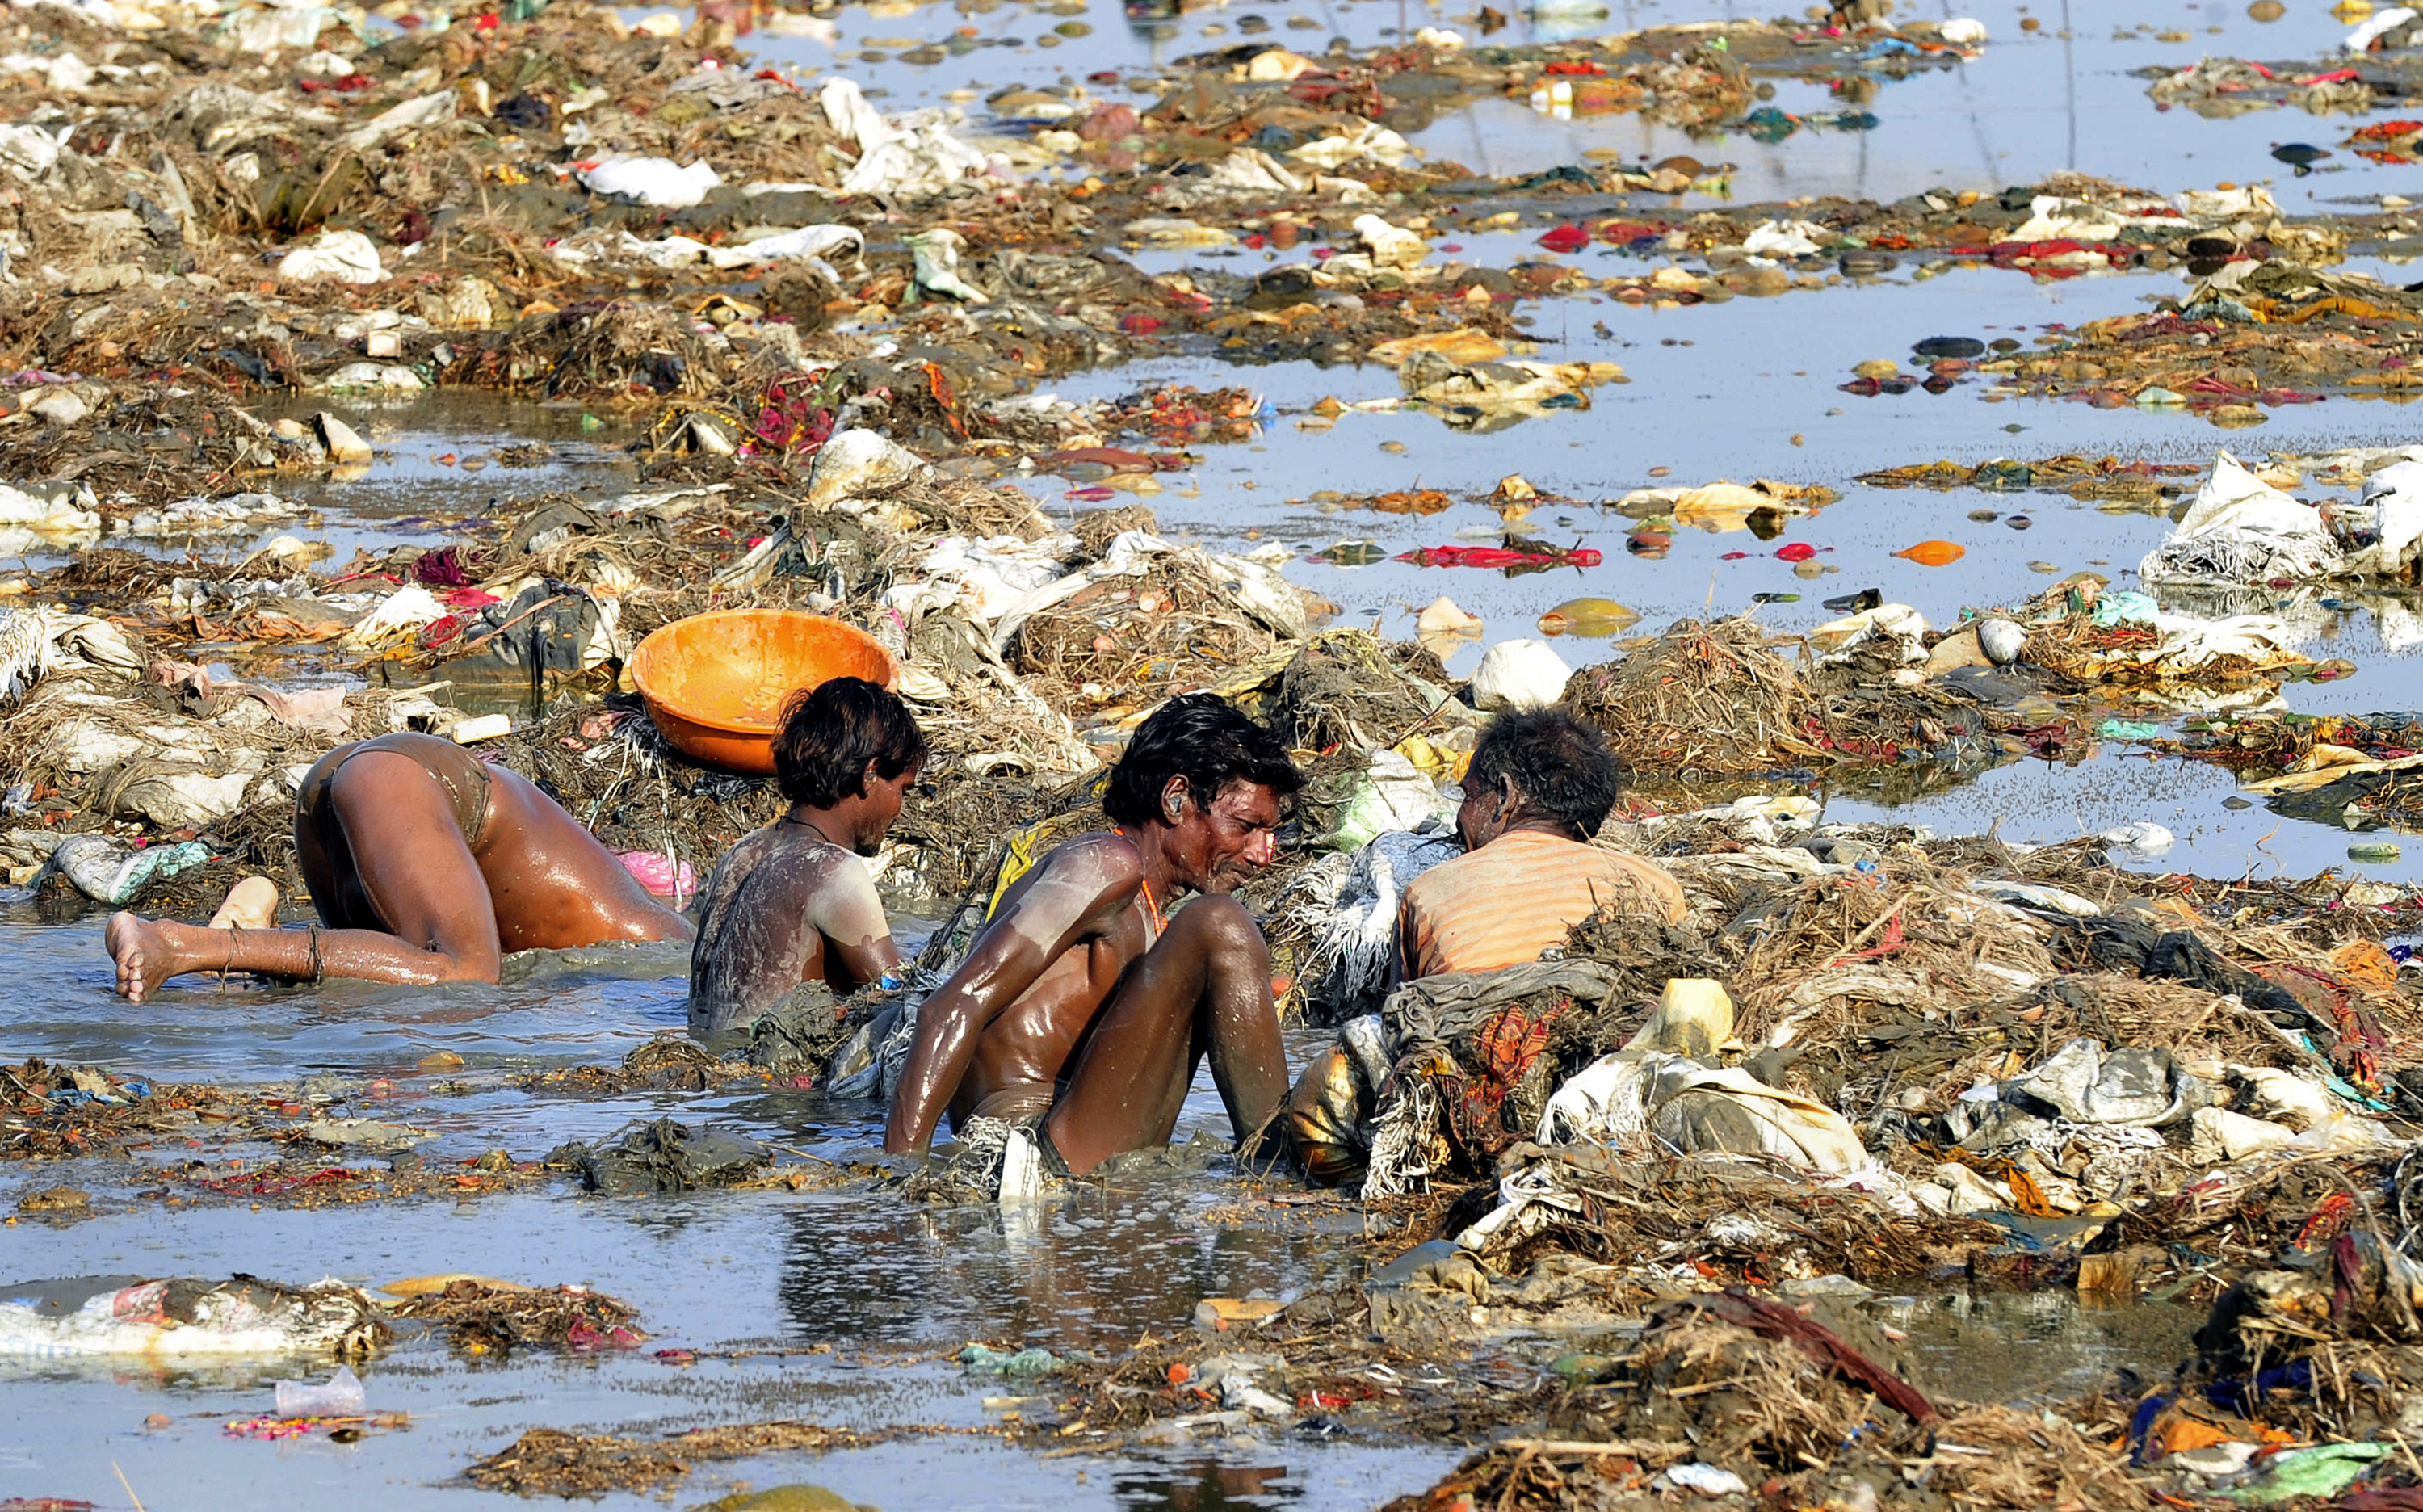 pollution in ganga river essay Facts about Ganges River Pollution